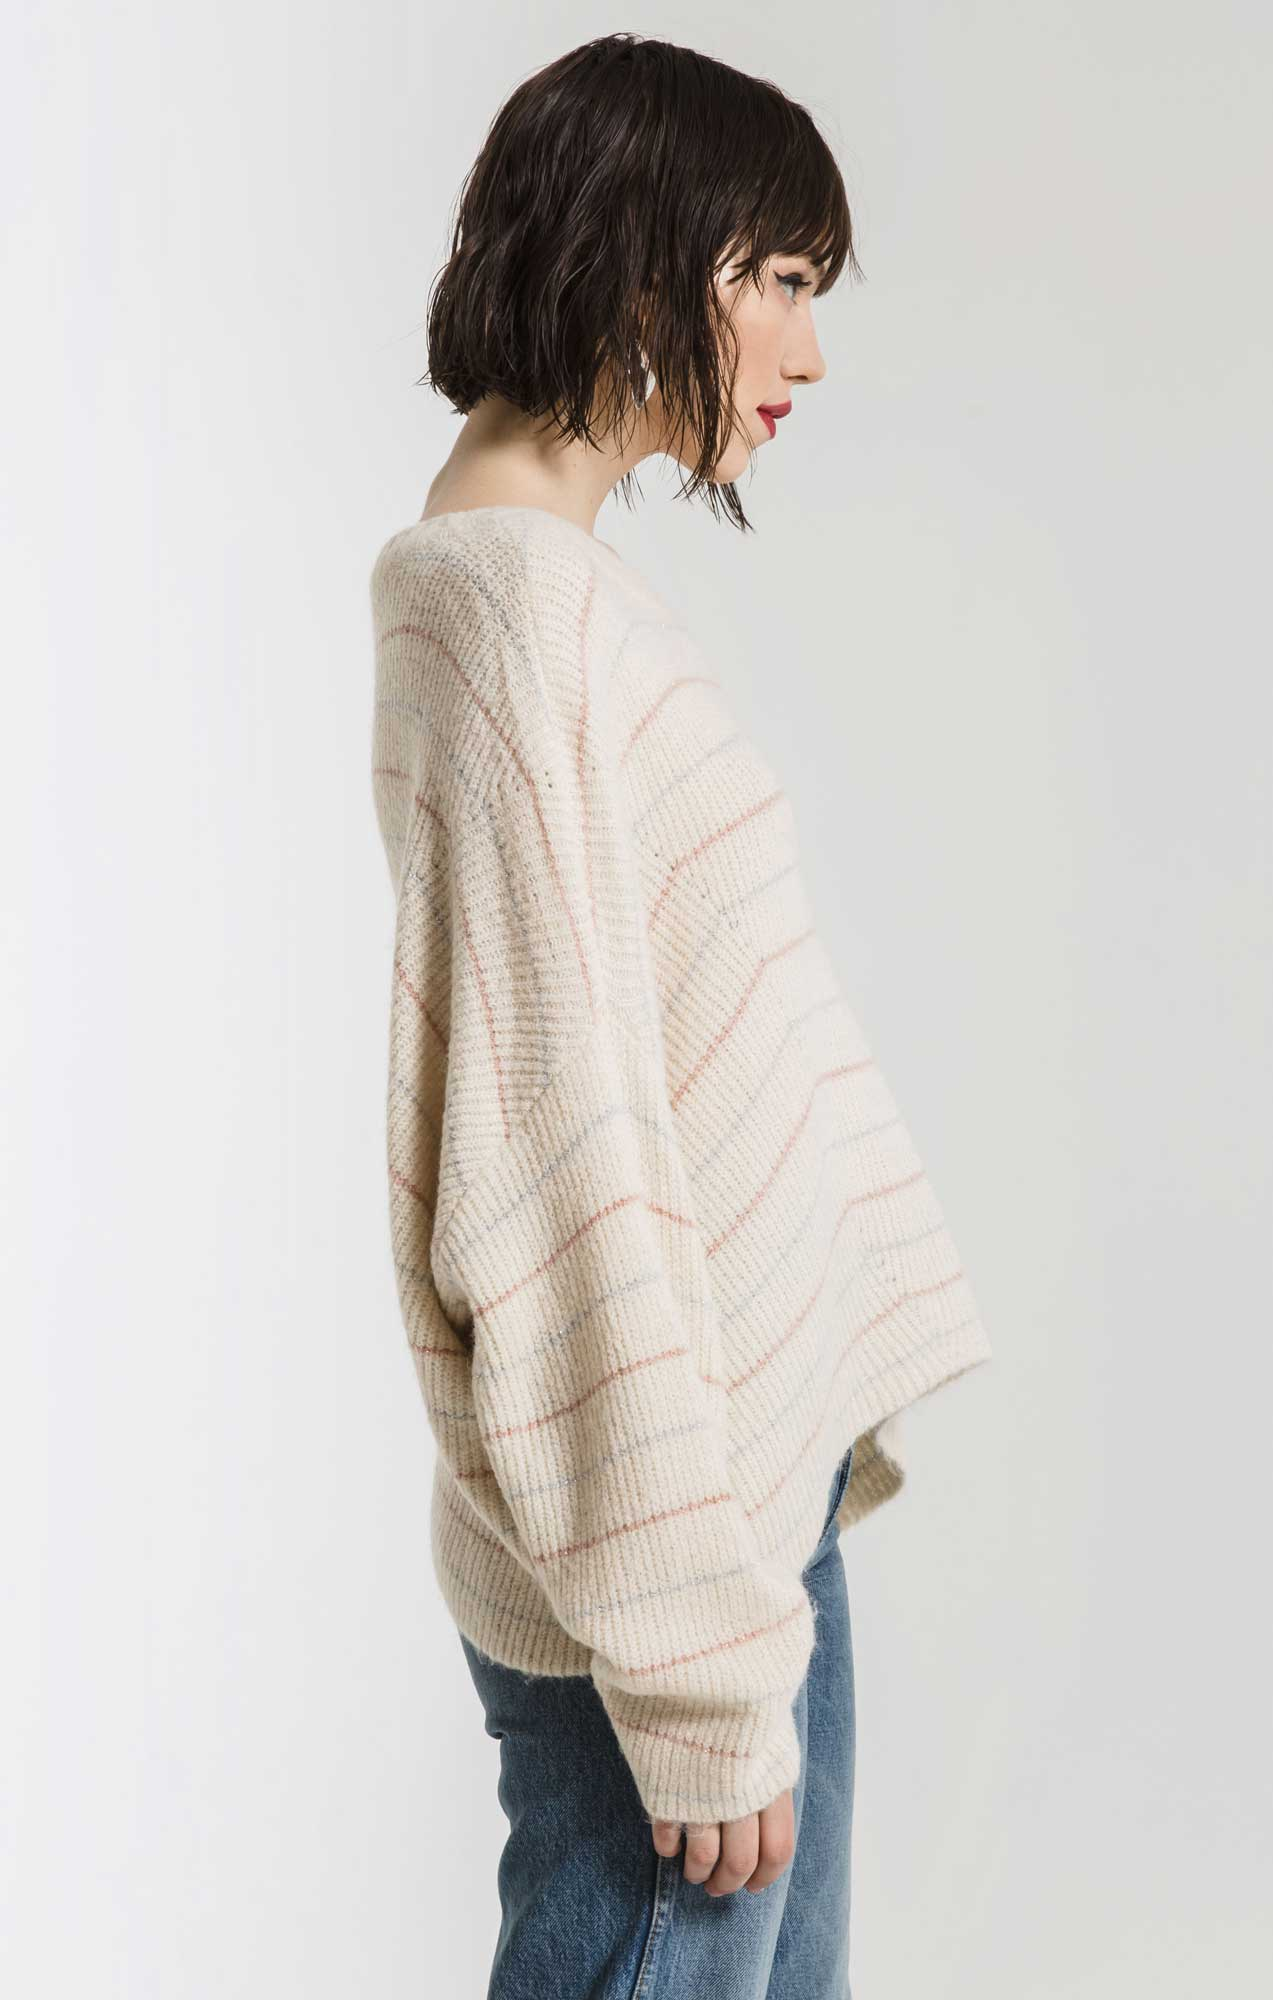 Sweaters Anna Striped Crew Neck Sweater By Rag Poets Ivory